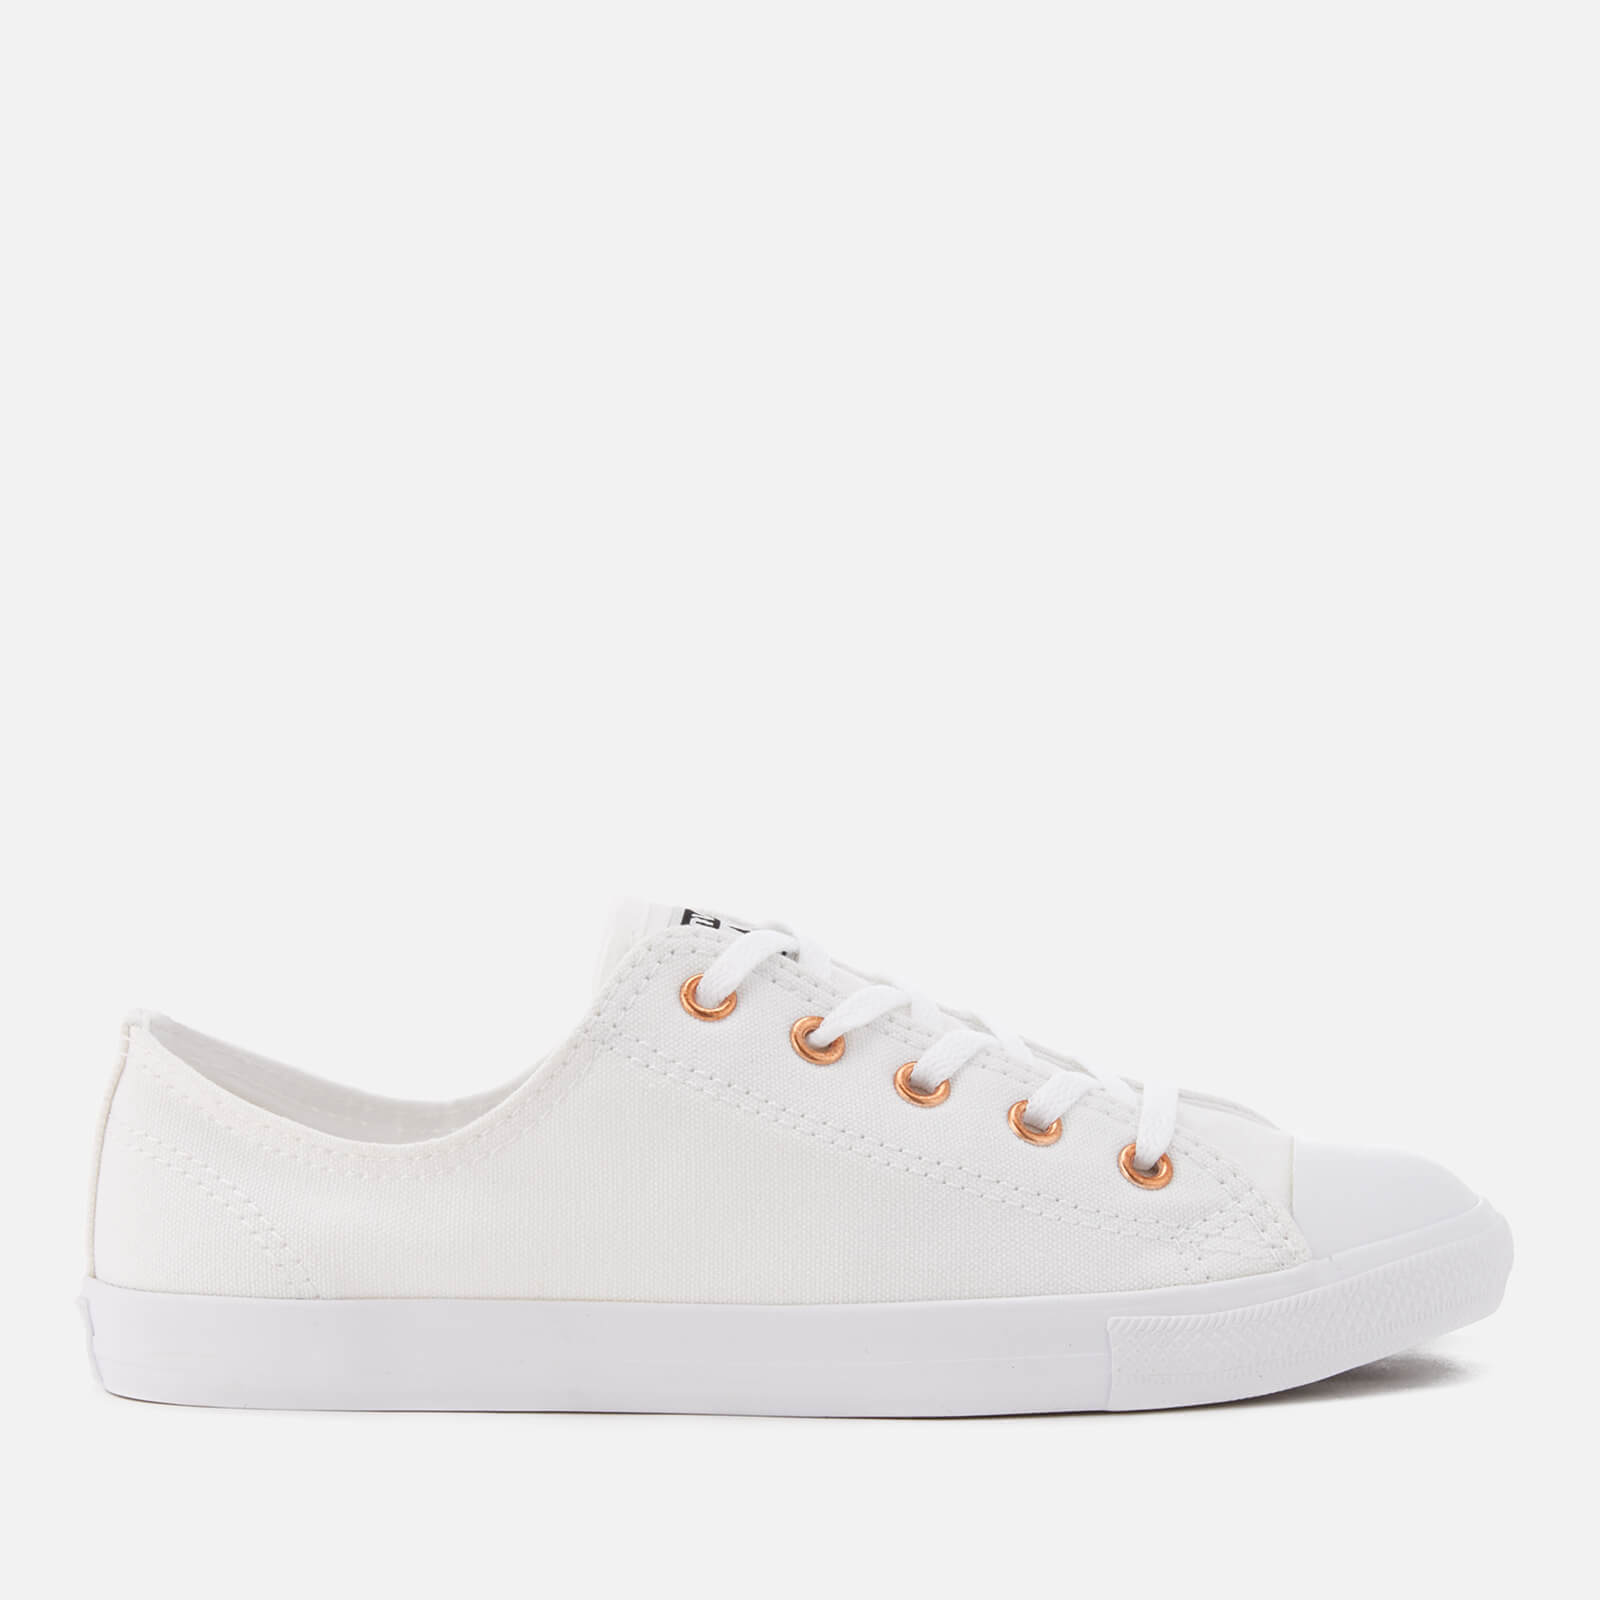 9832582bf8ca3 Converse Women's Chuck Taylor All Star Dainty Ox Trainers - White/White/Gold  | FREE UK Delivery | Allsole